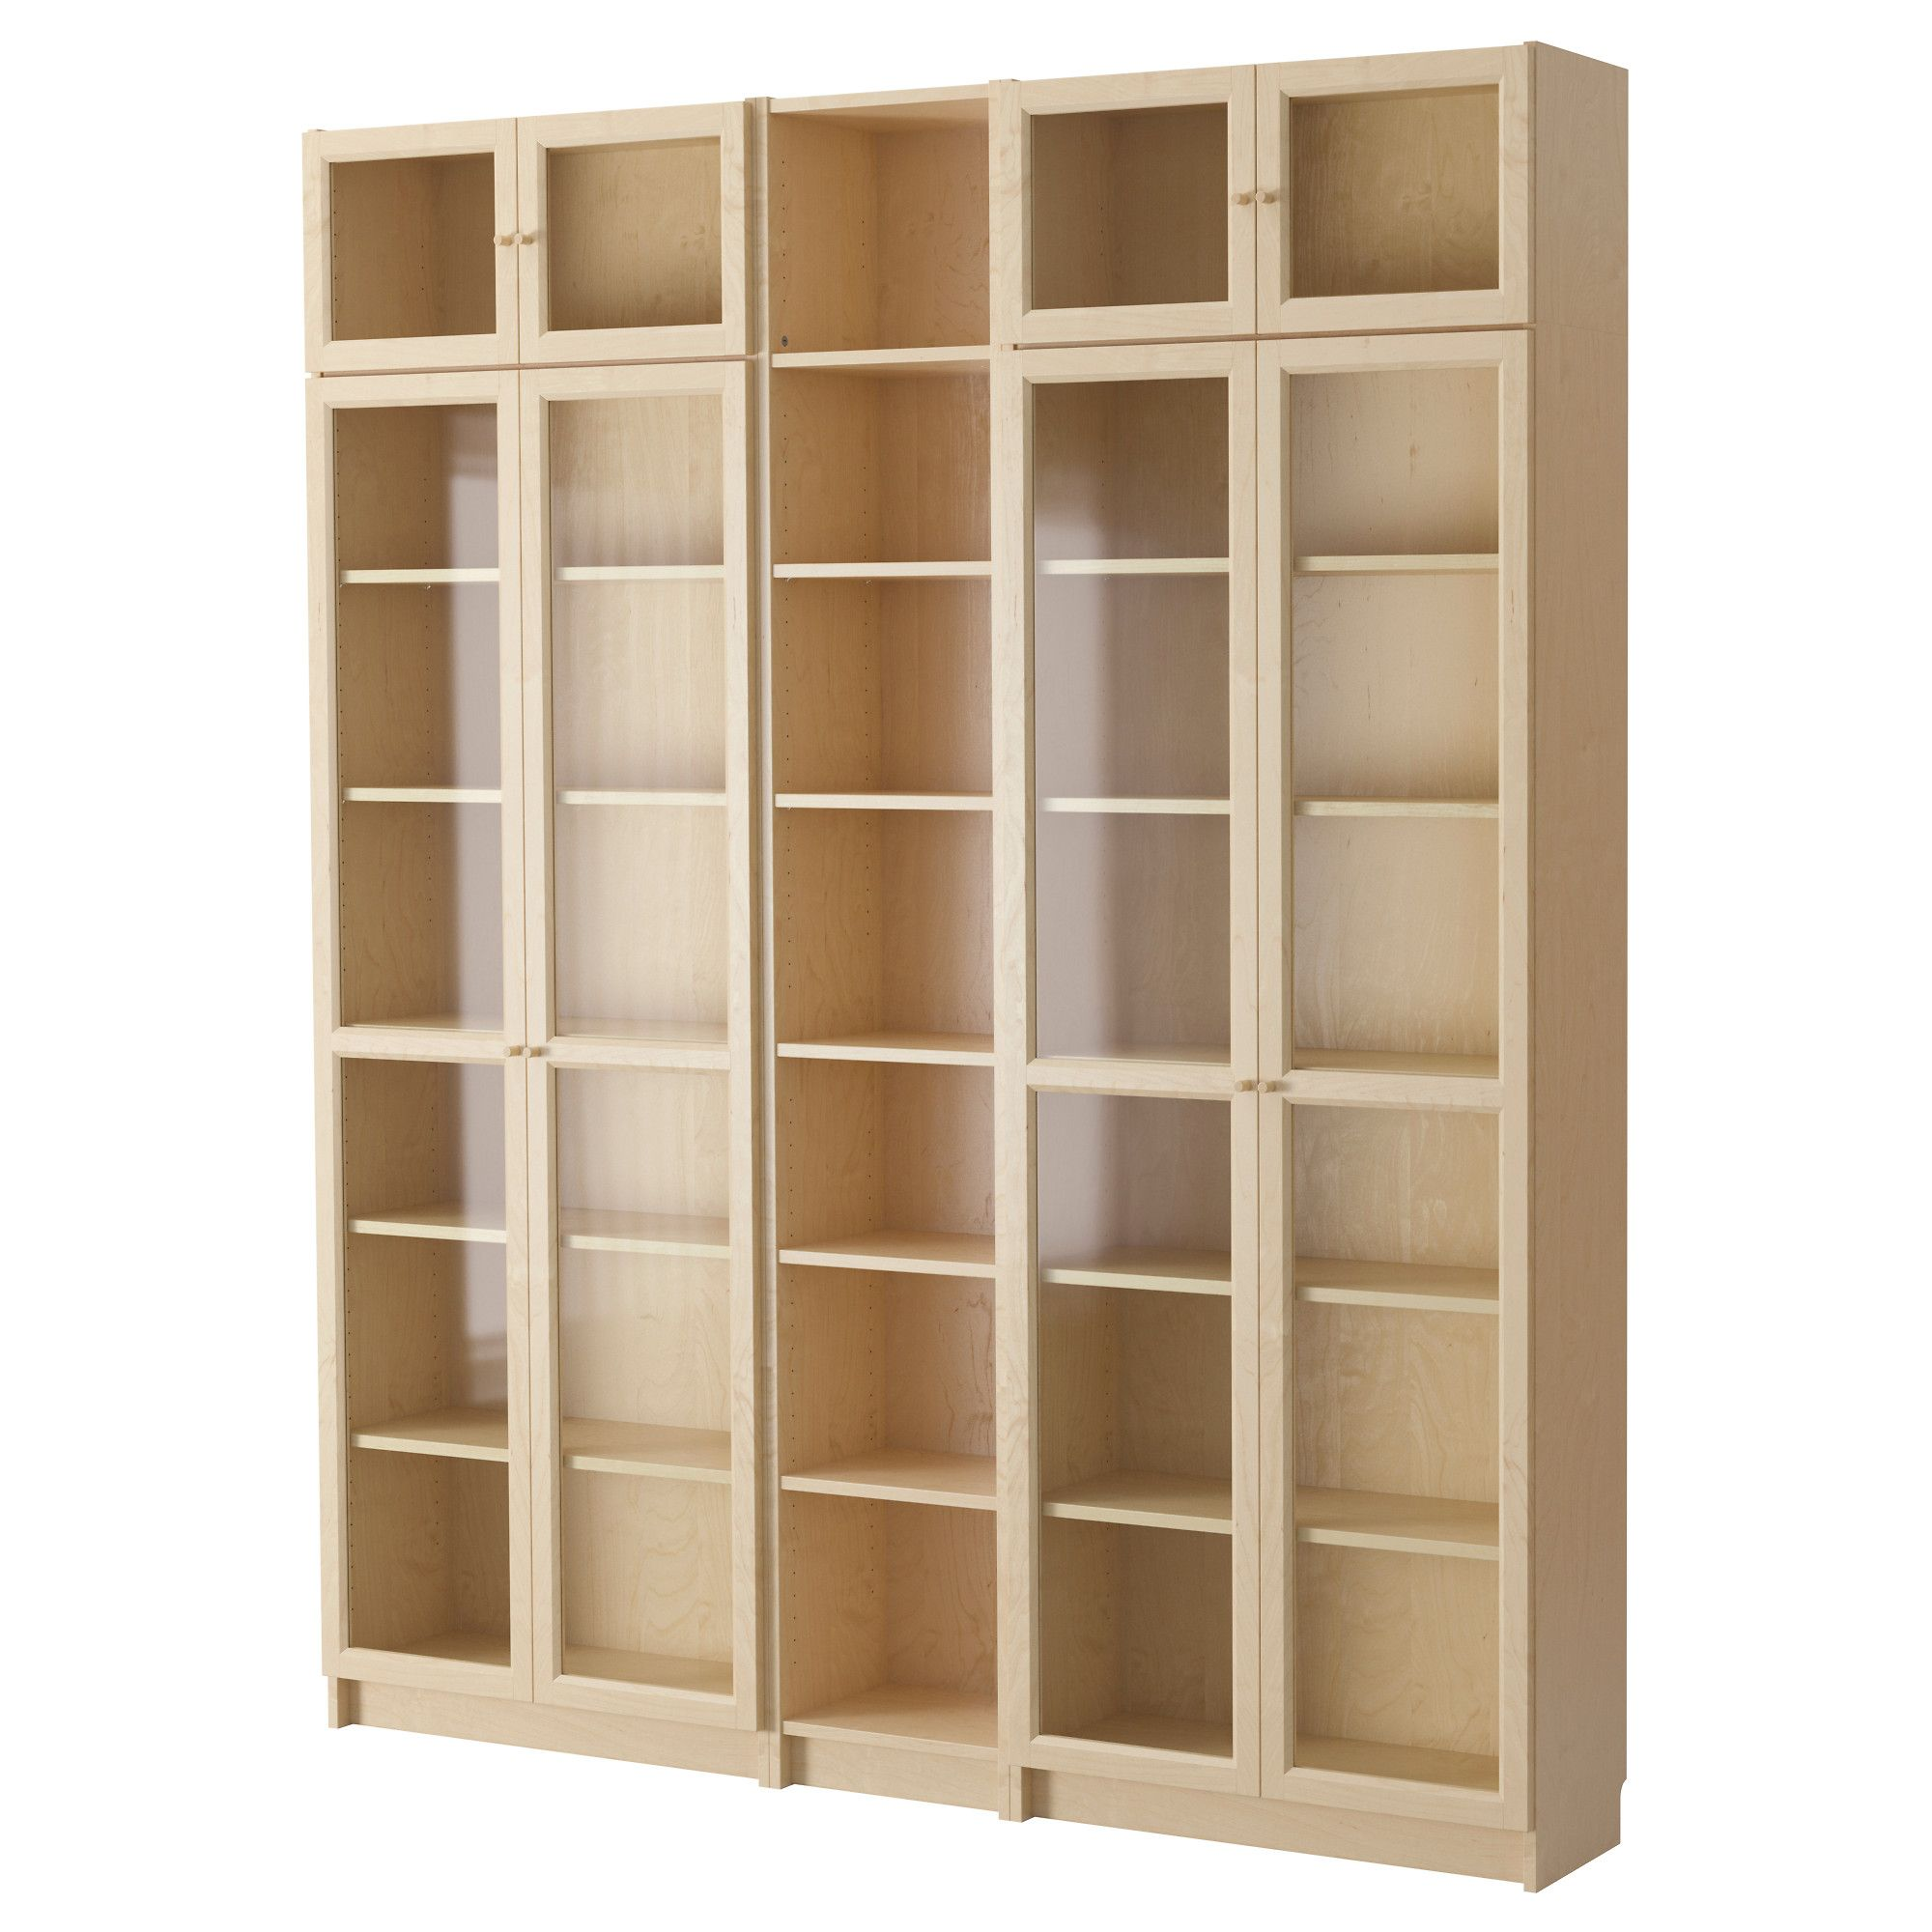 overstock shipping birch cube century home product bookcase mid free bookcases raw storage today baltic wood modern garden